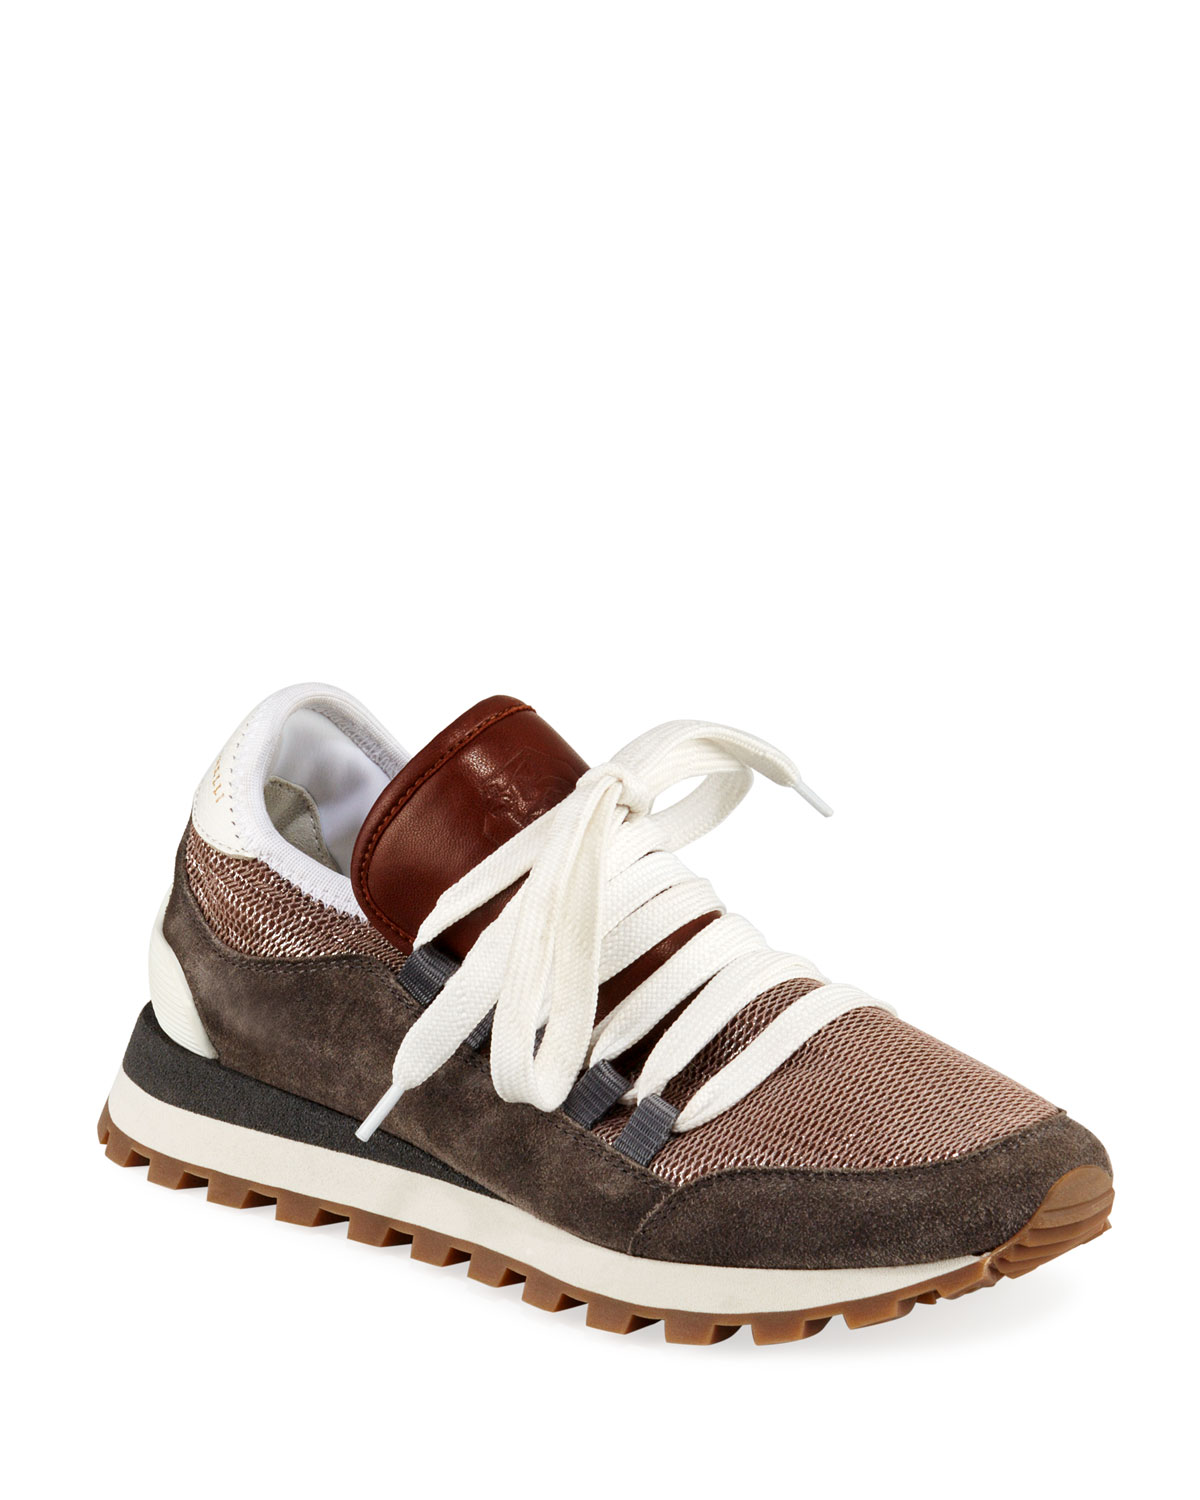 Techno Net Sneakers With Wide Laces, Cinnamon